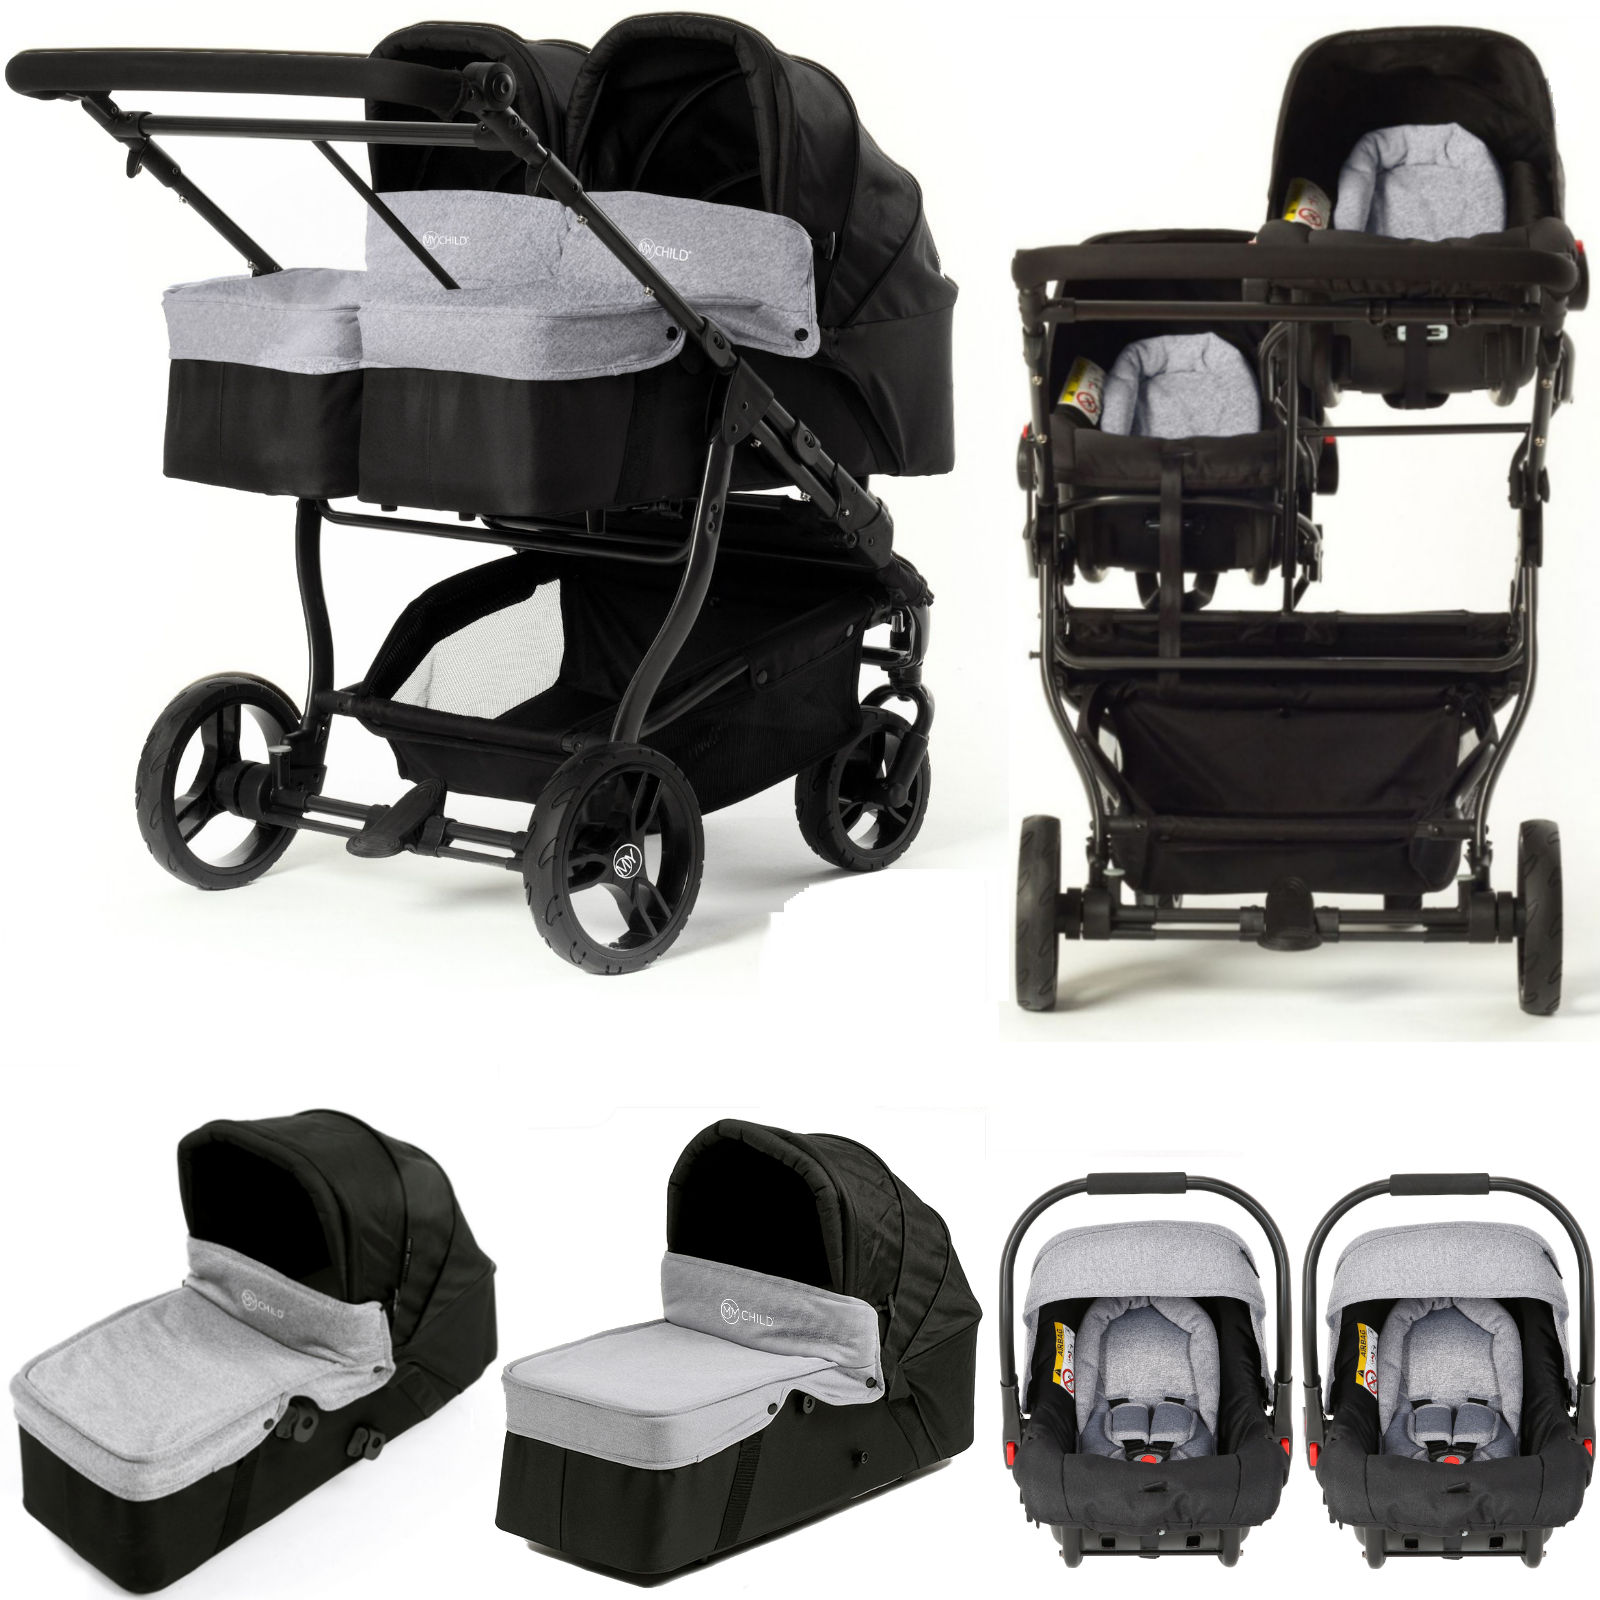 Twin Stroller Brands My Child Easy Twin Double Stroller Travel System